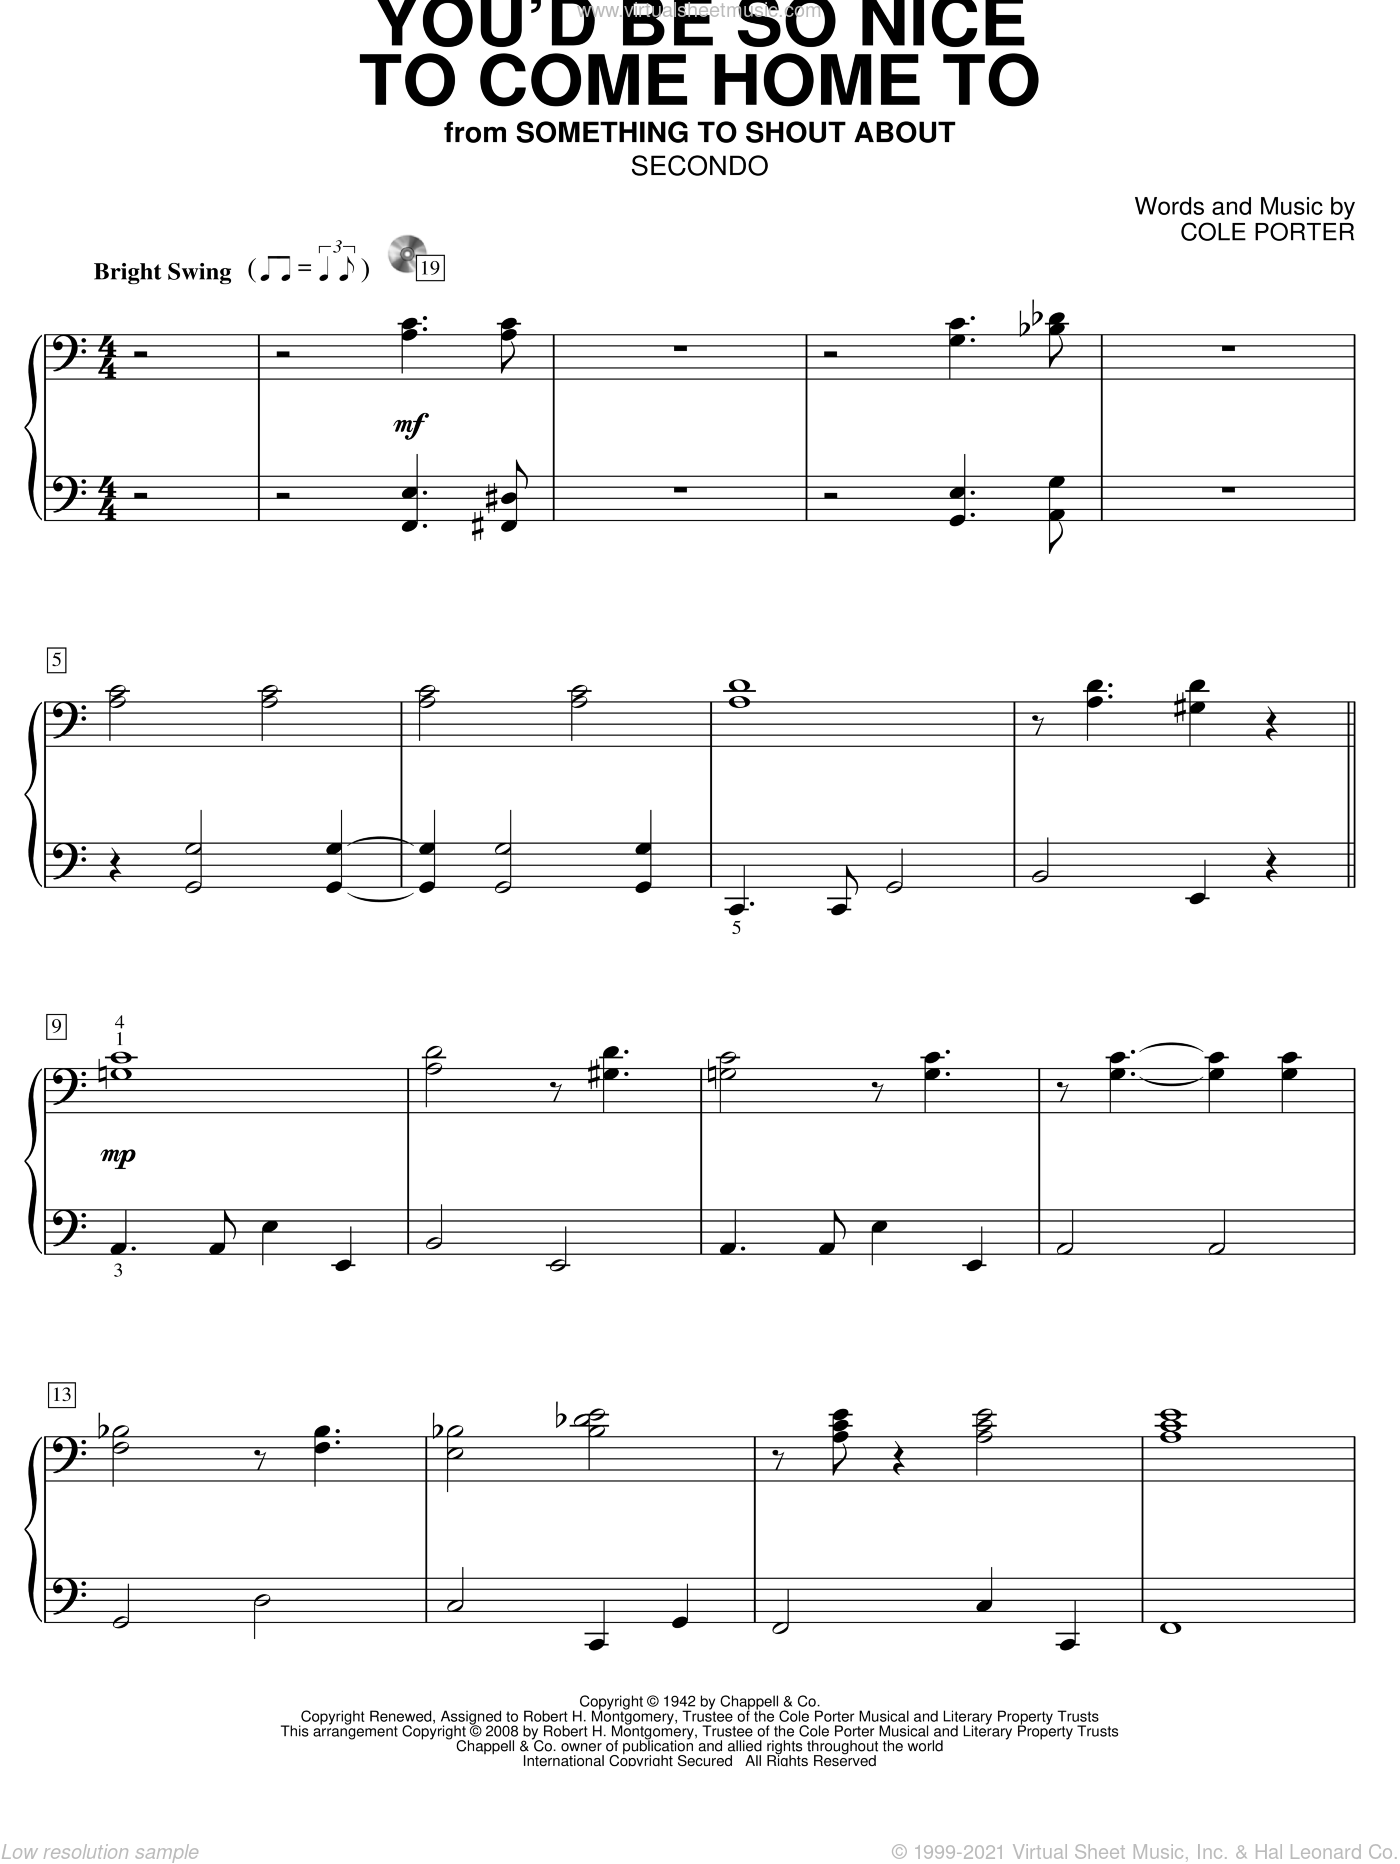 You'd Be So Nice To Come Home To sheet music for piano four hands (duets) by Cole Porter. Score Image Preview.